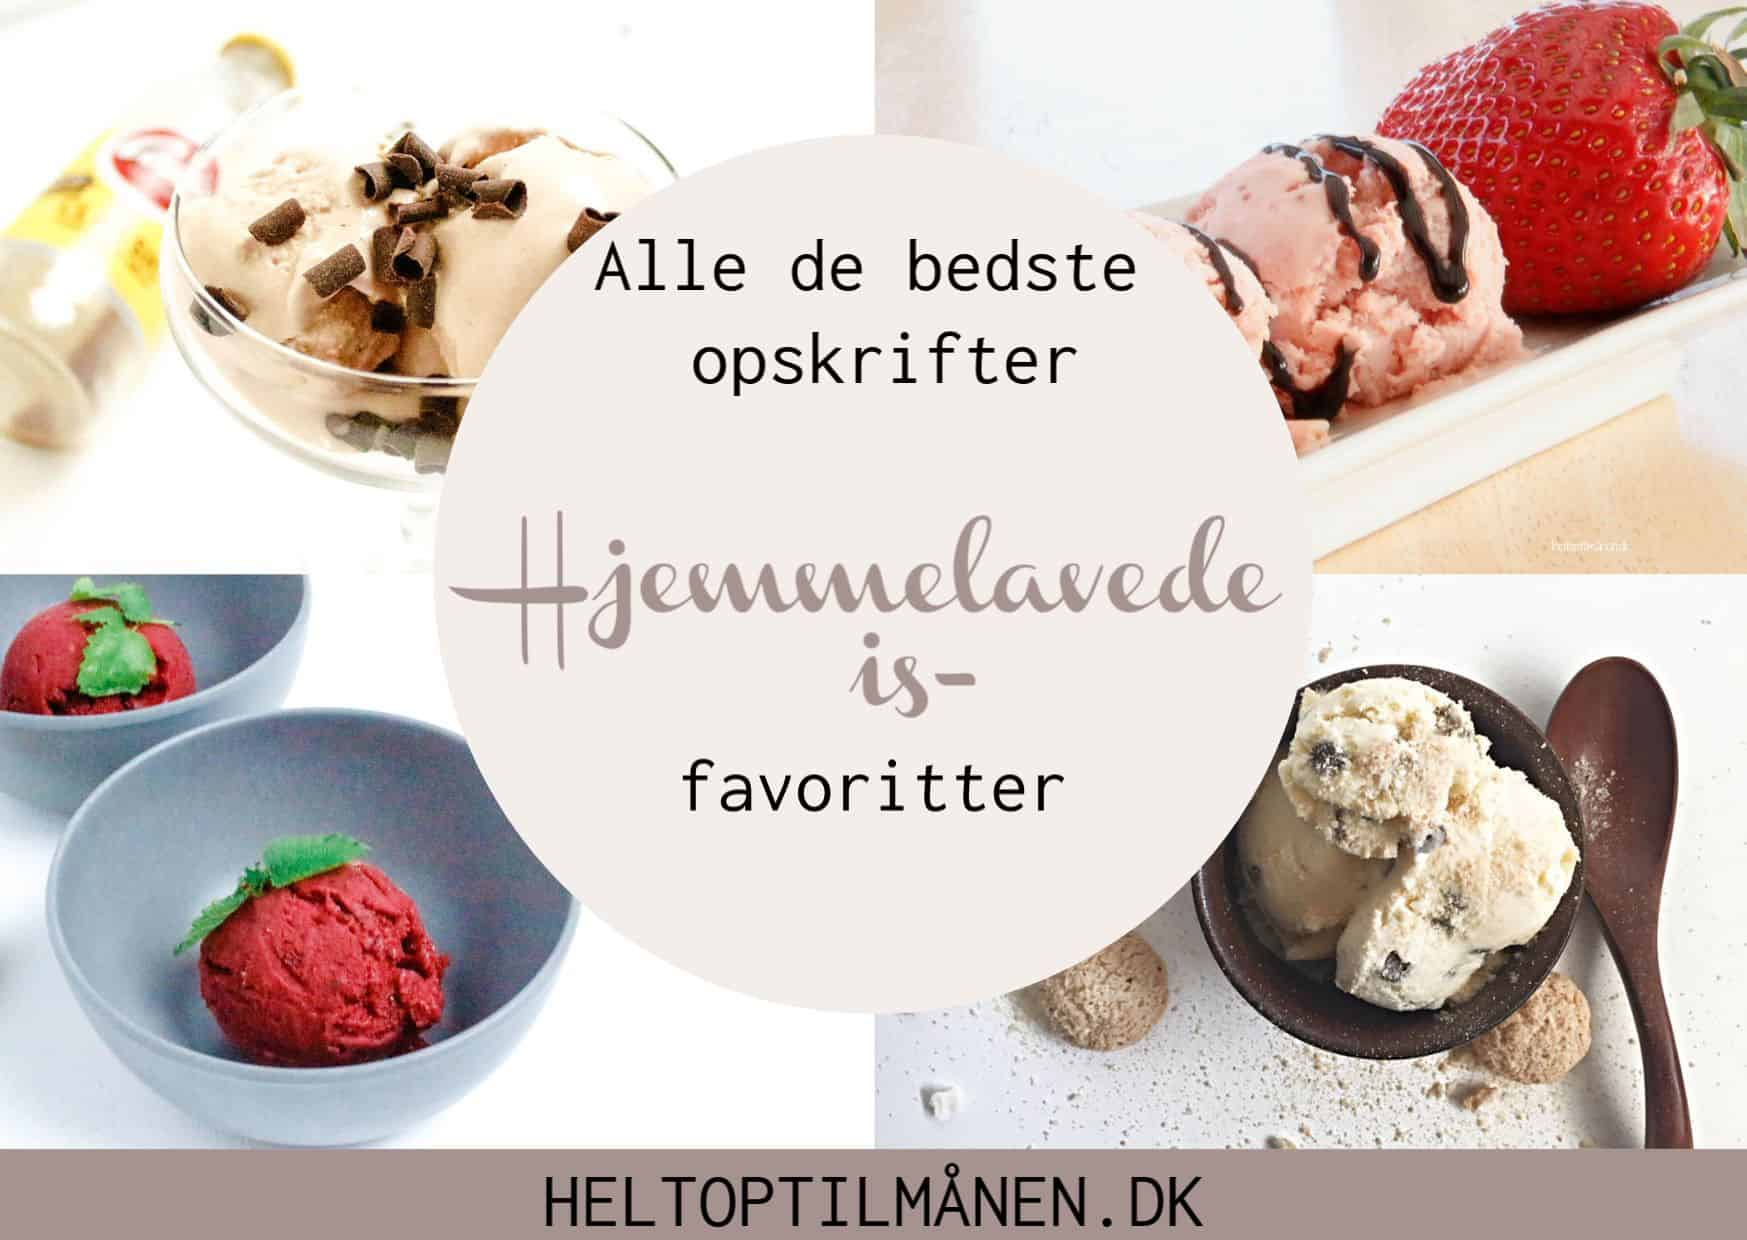 Hjemmelavede is-favoritter